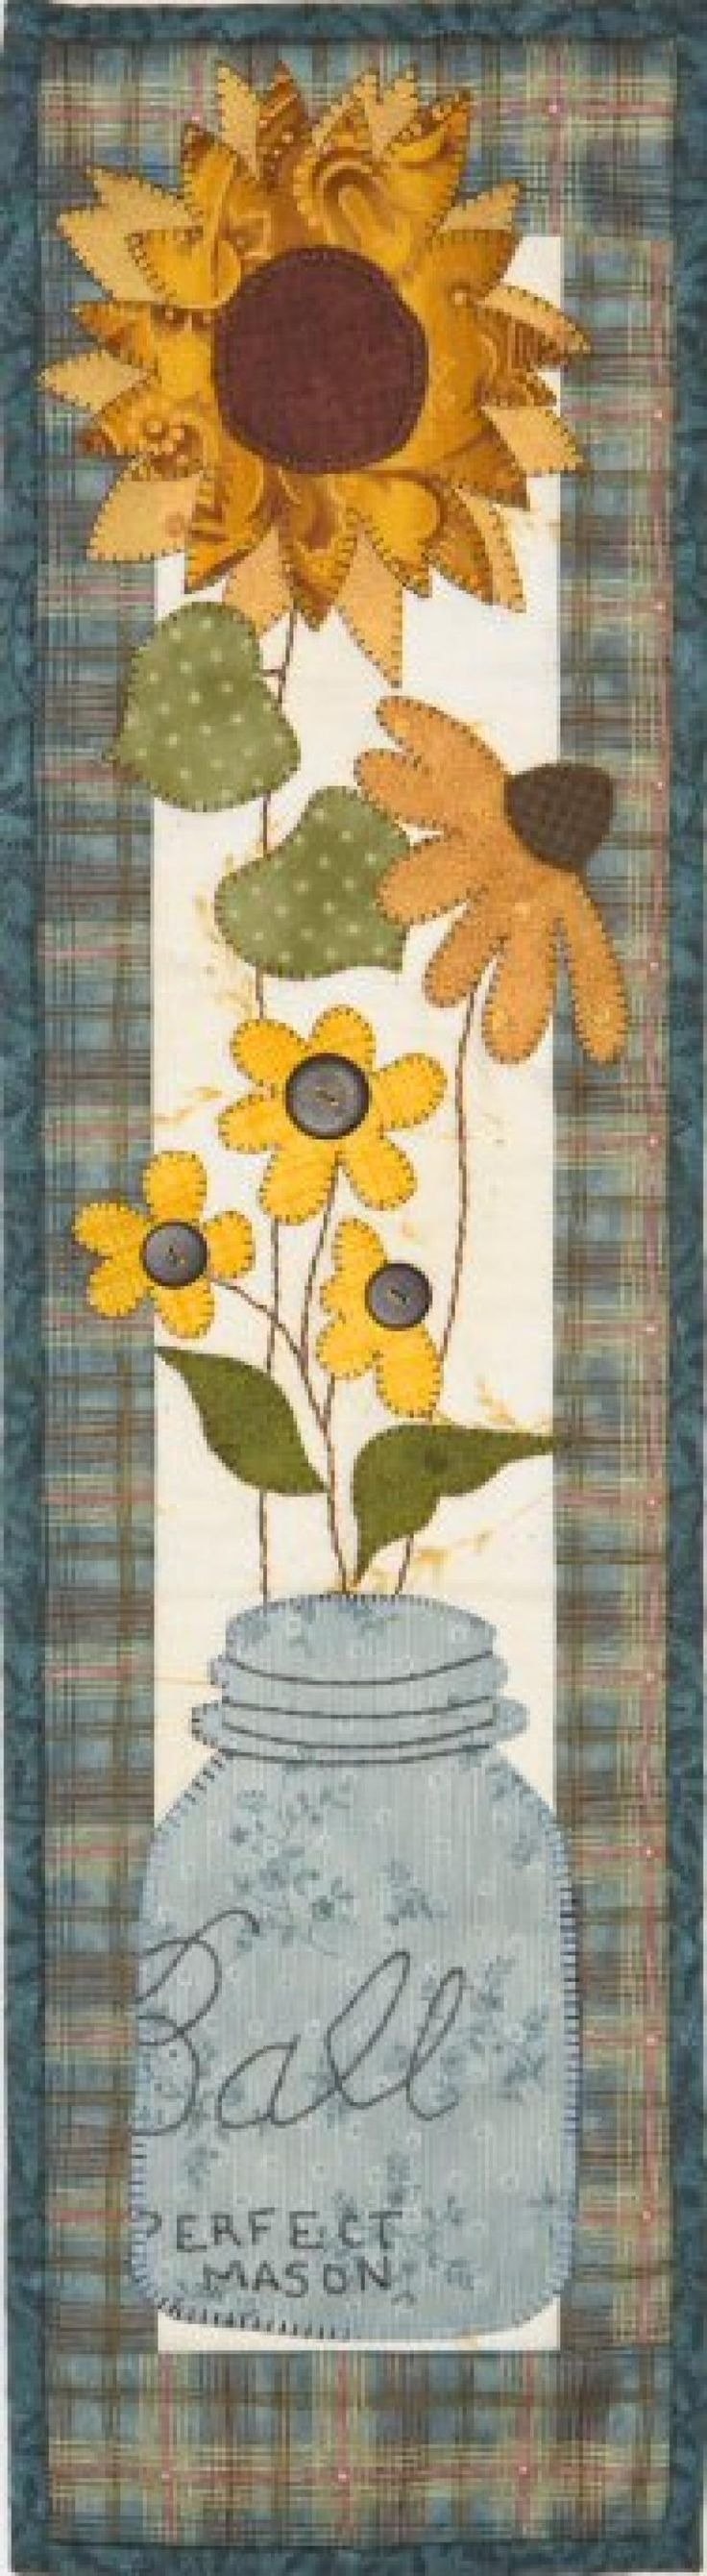 39 Best Skinny Quilts Images On Pinterest Skinny Quilts